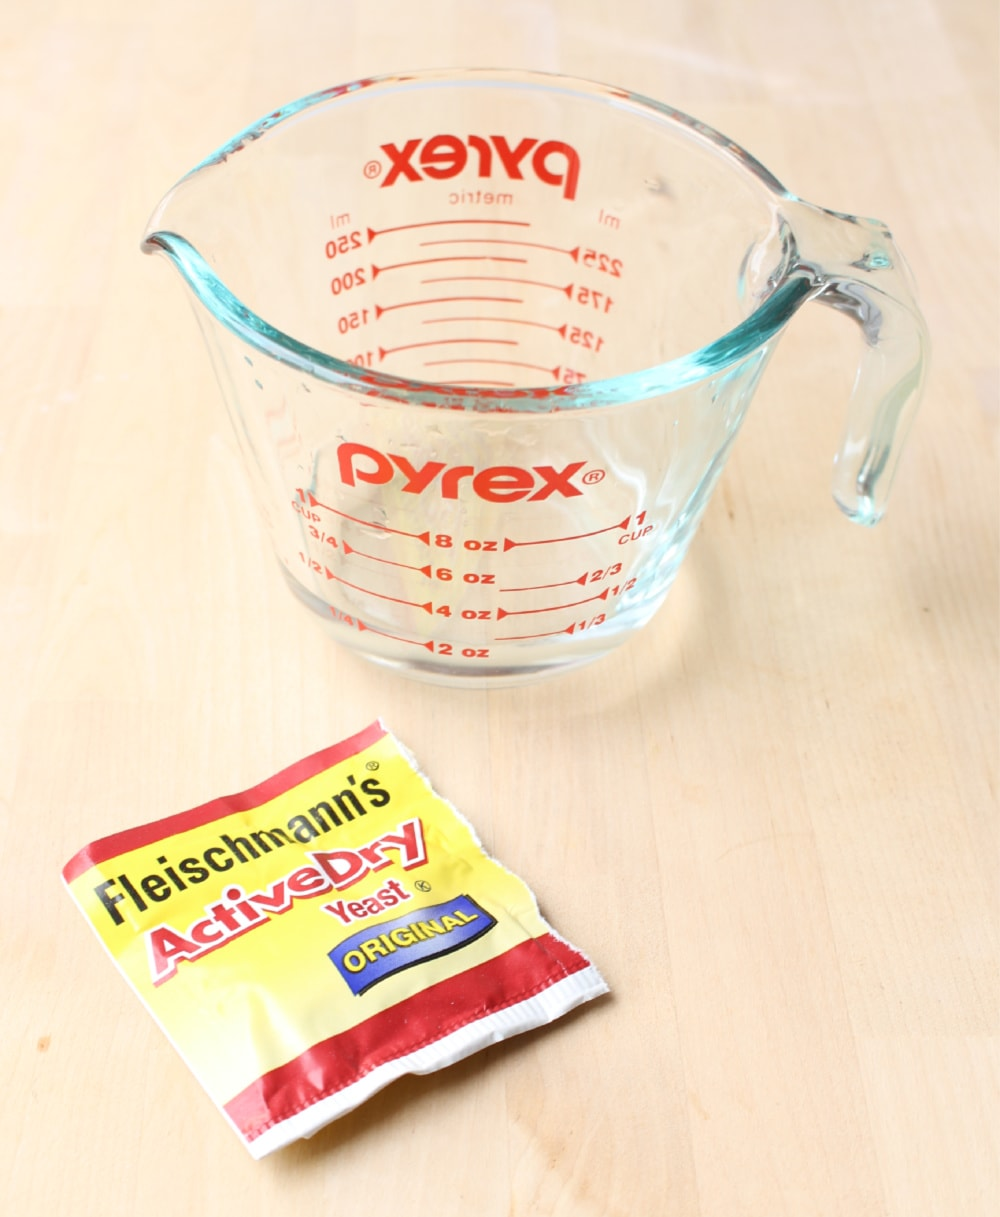 A package of yeast with a measuring cup on a wooden surface.